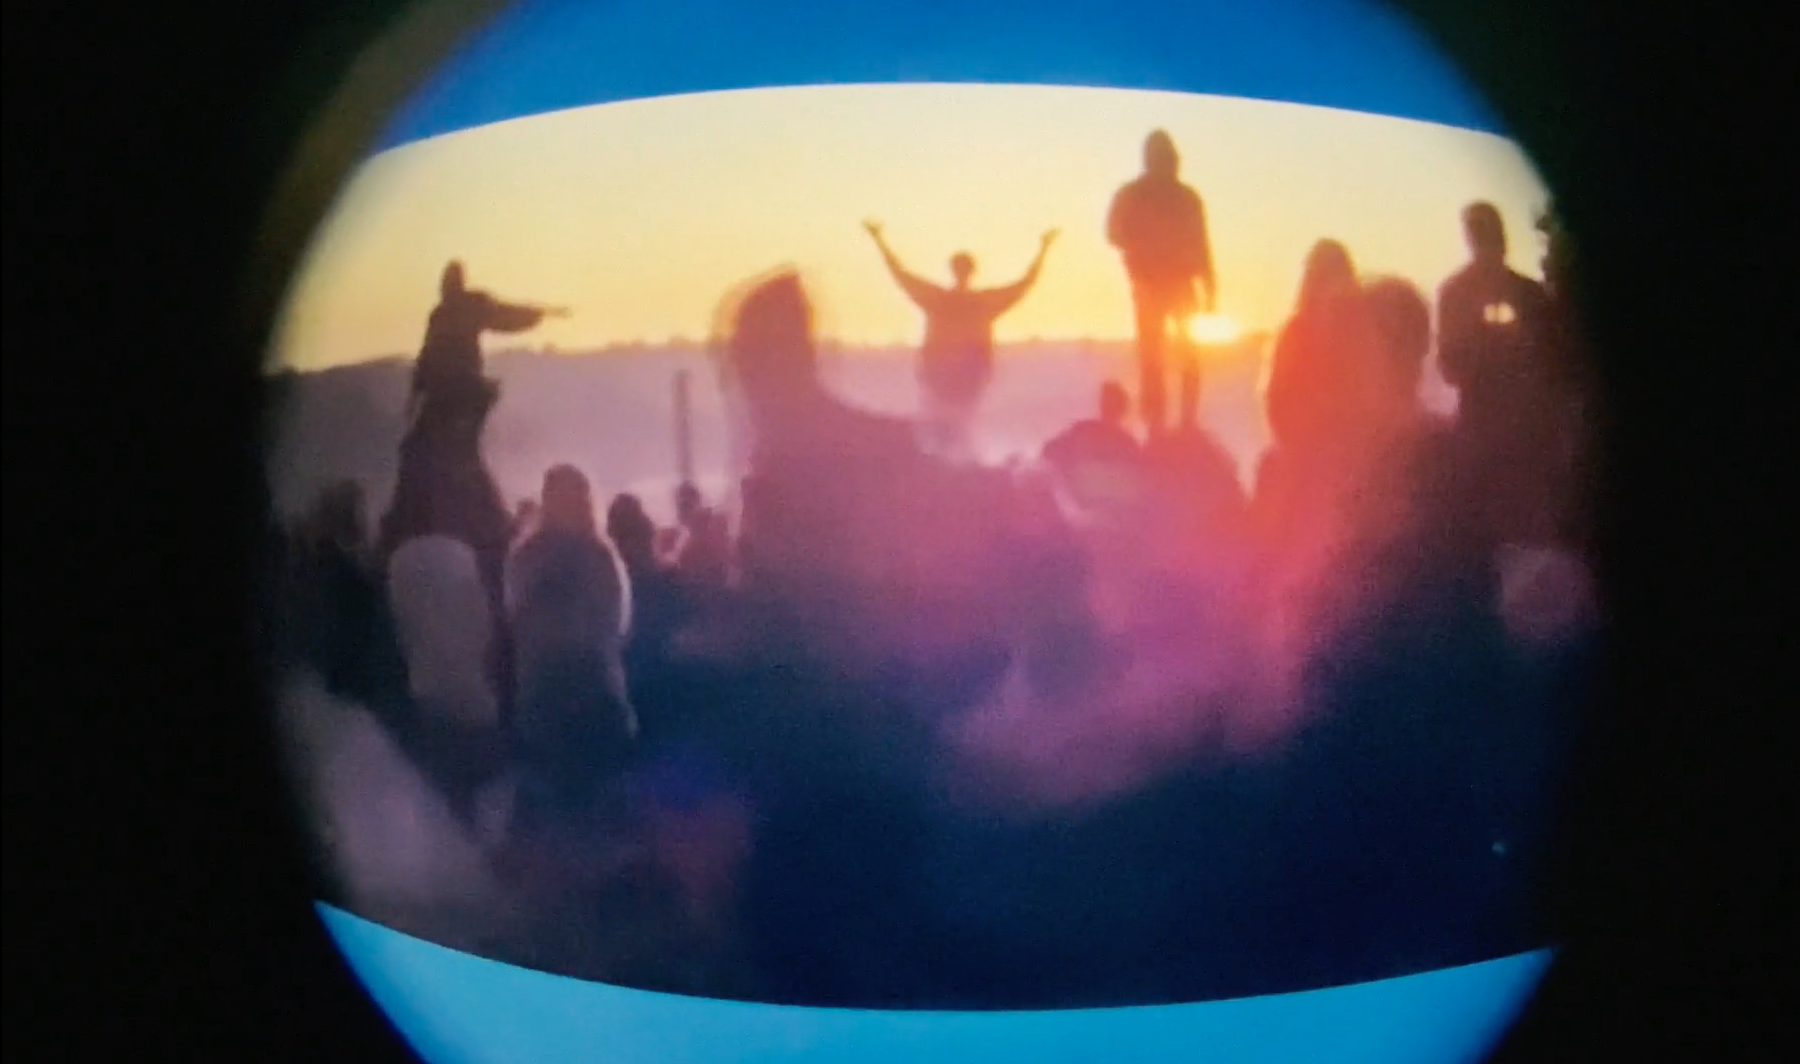 '90s Rave Footage video by Charlie Robins and Jasper Tygner!